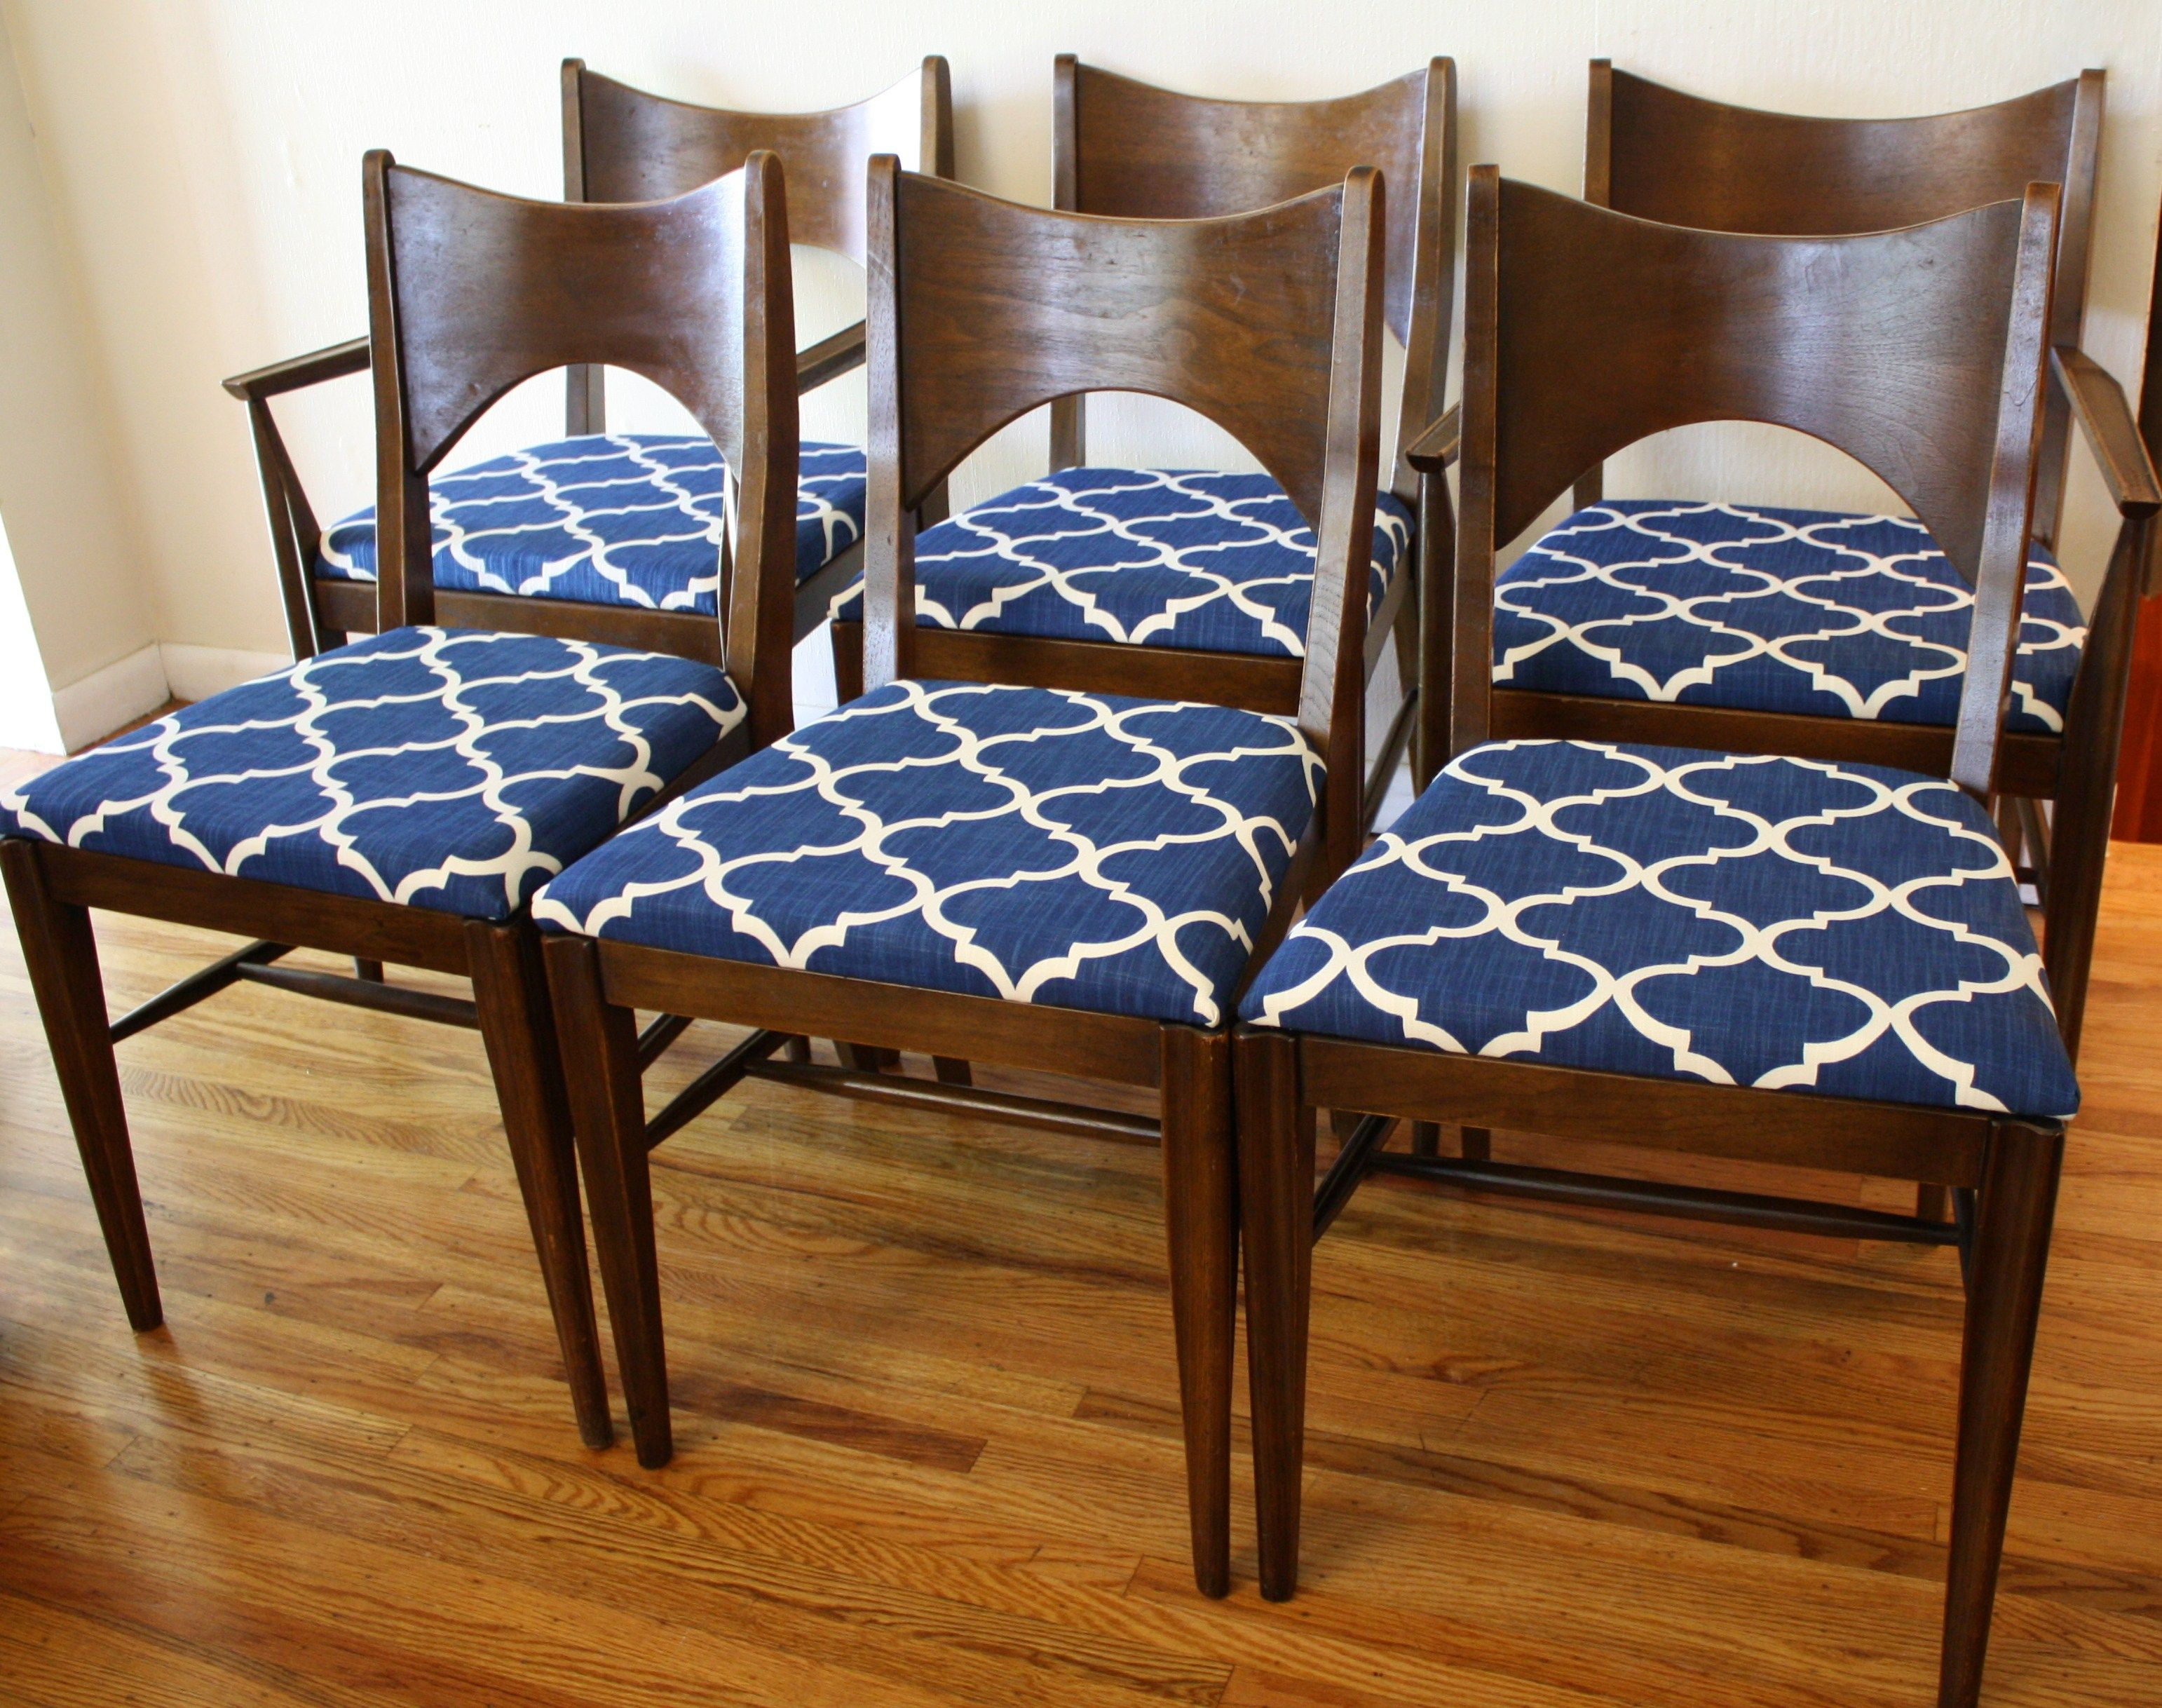 Stoff Fur Reupholstering Esszimmer Stuhle Home Design Dining Room Chair Fabric Dining Room Chairs Reupholster Dining Room Chairs Dining Room Chair Cushions